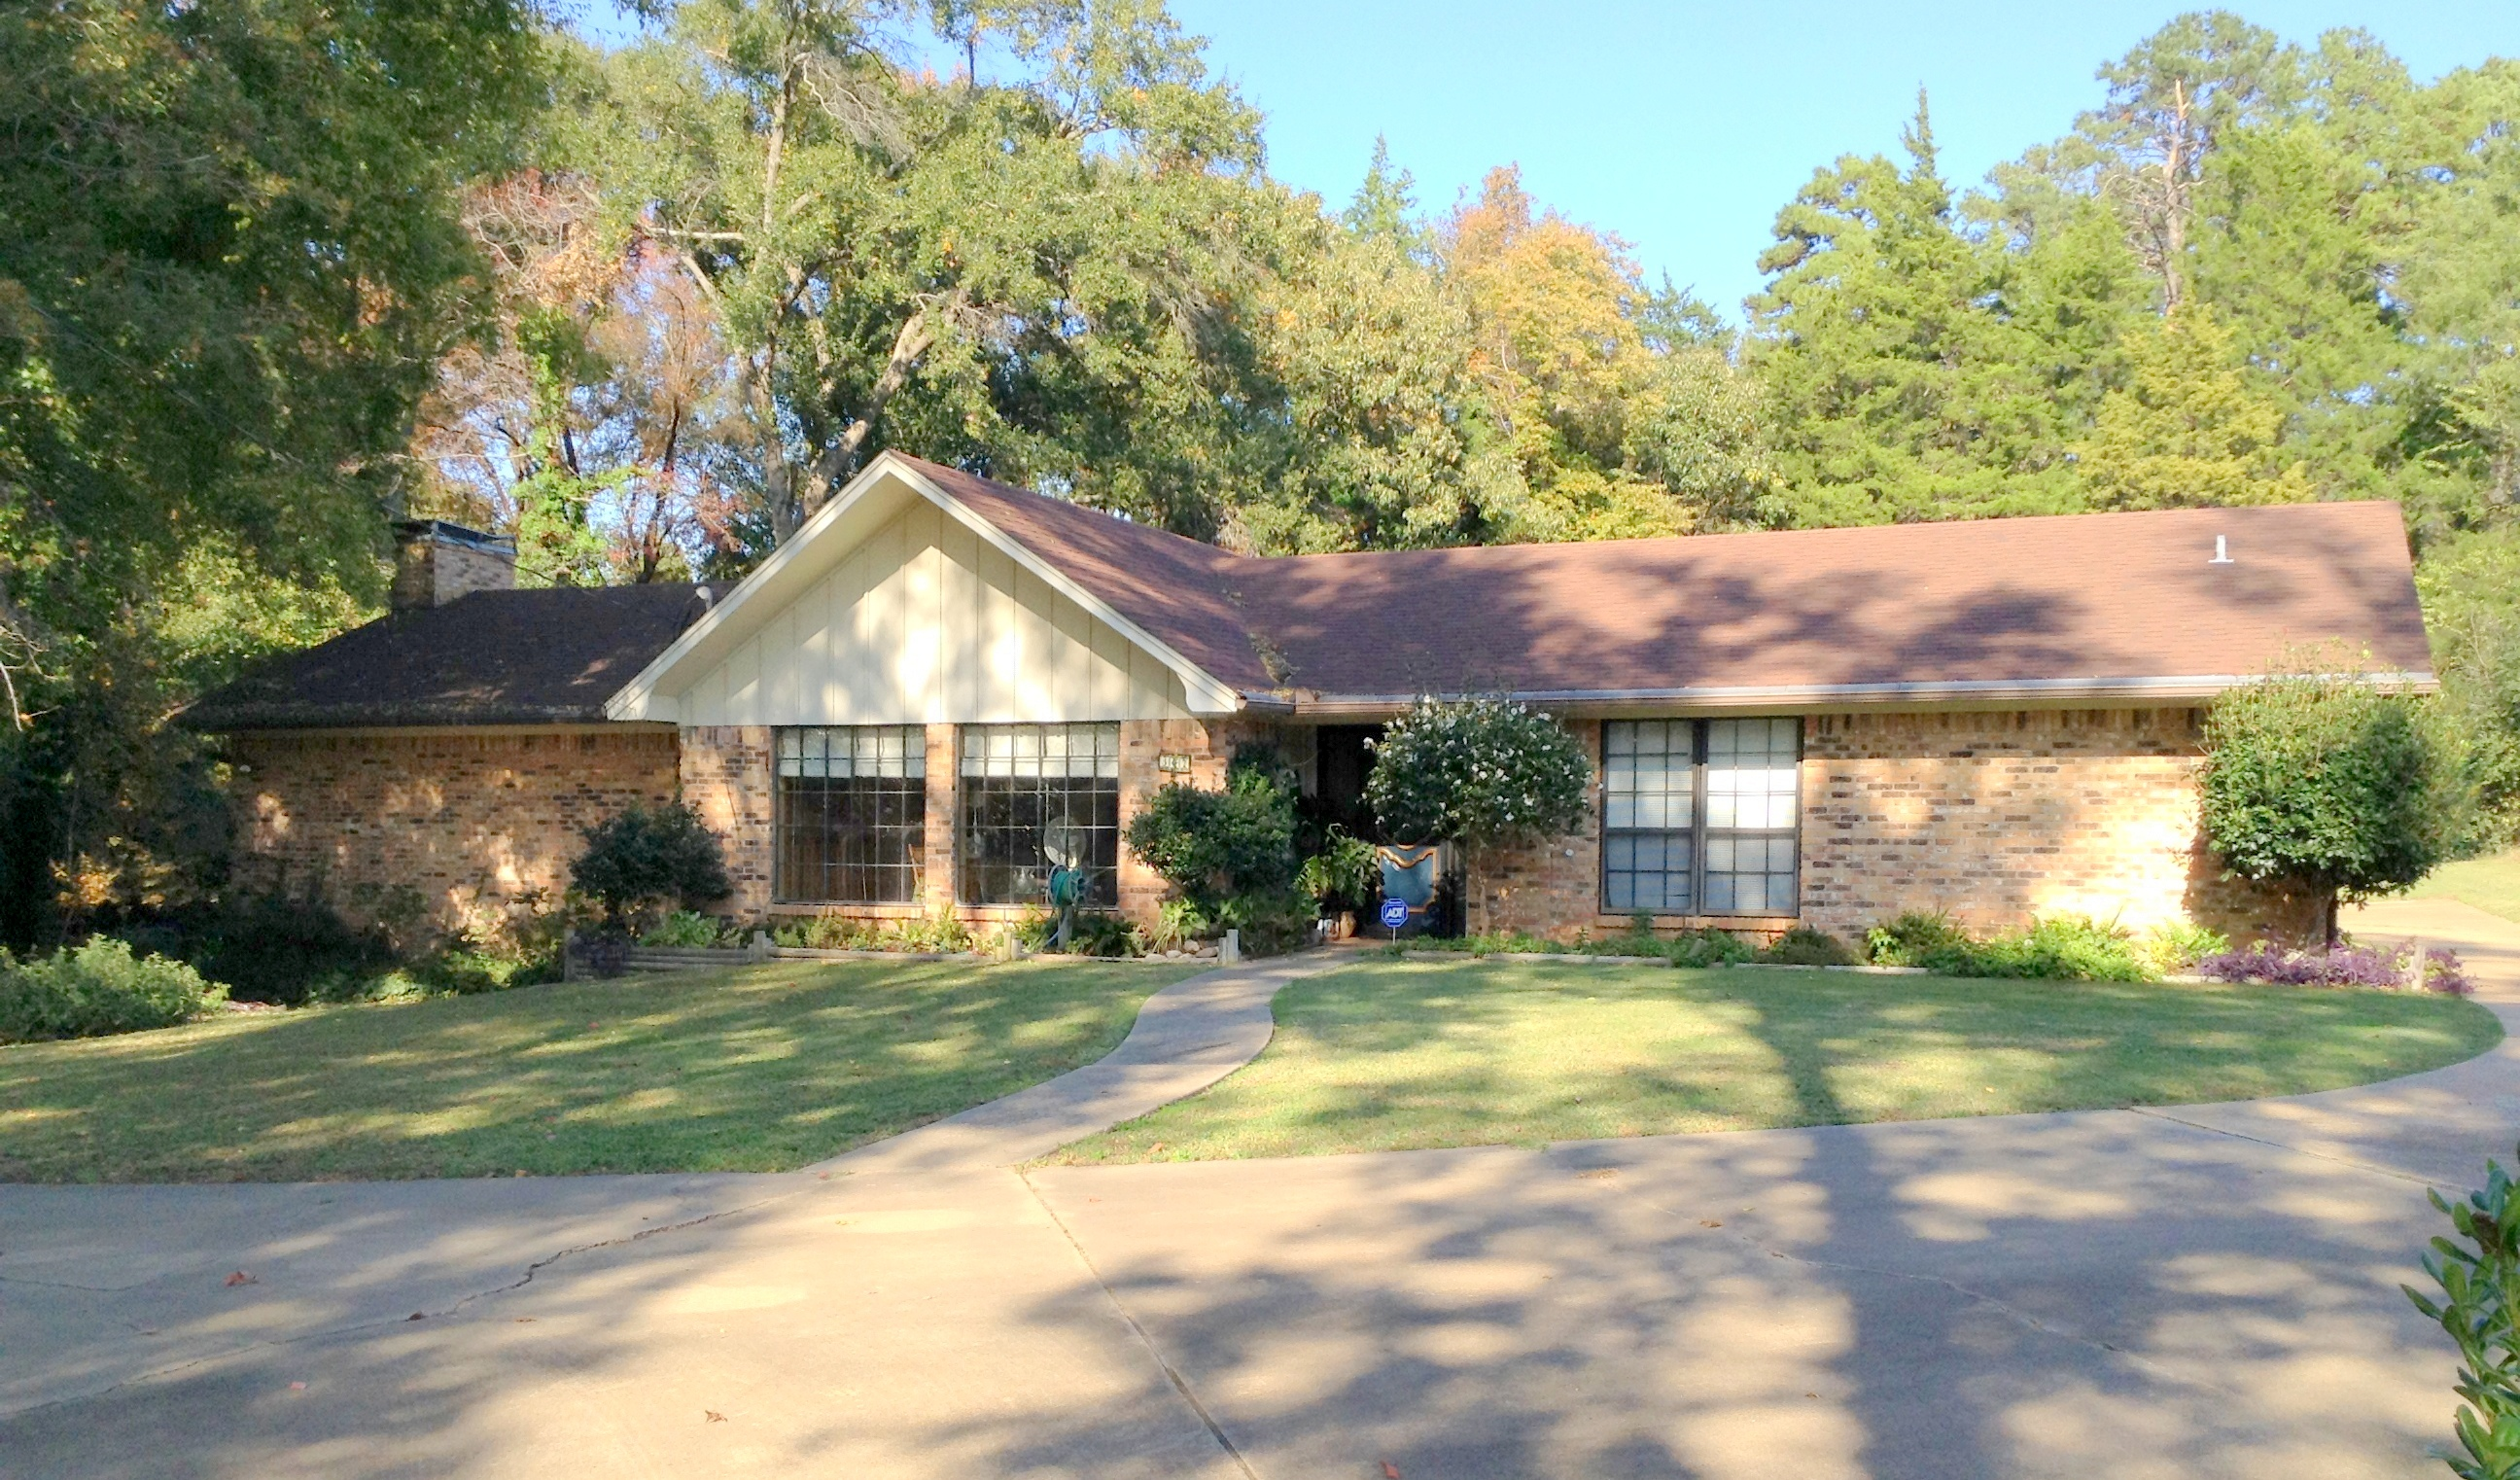 e tx 229k custom features galore 4br connects golf course